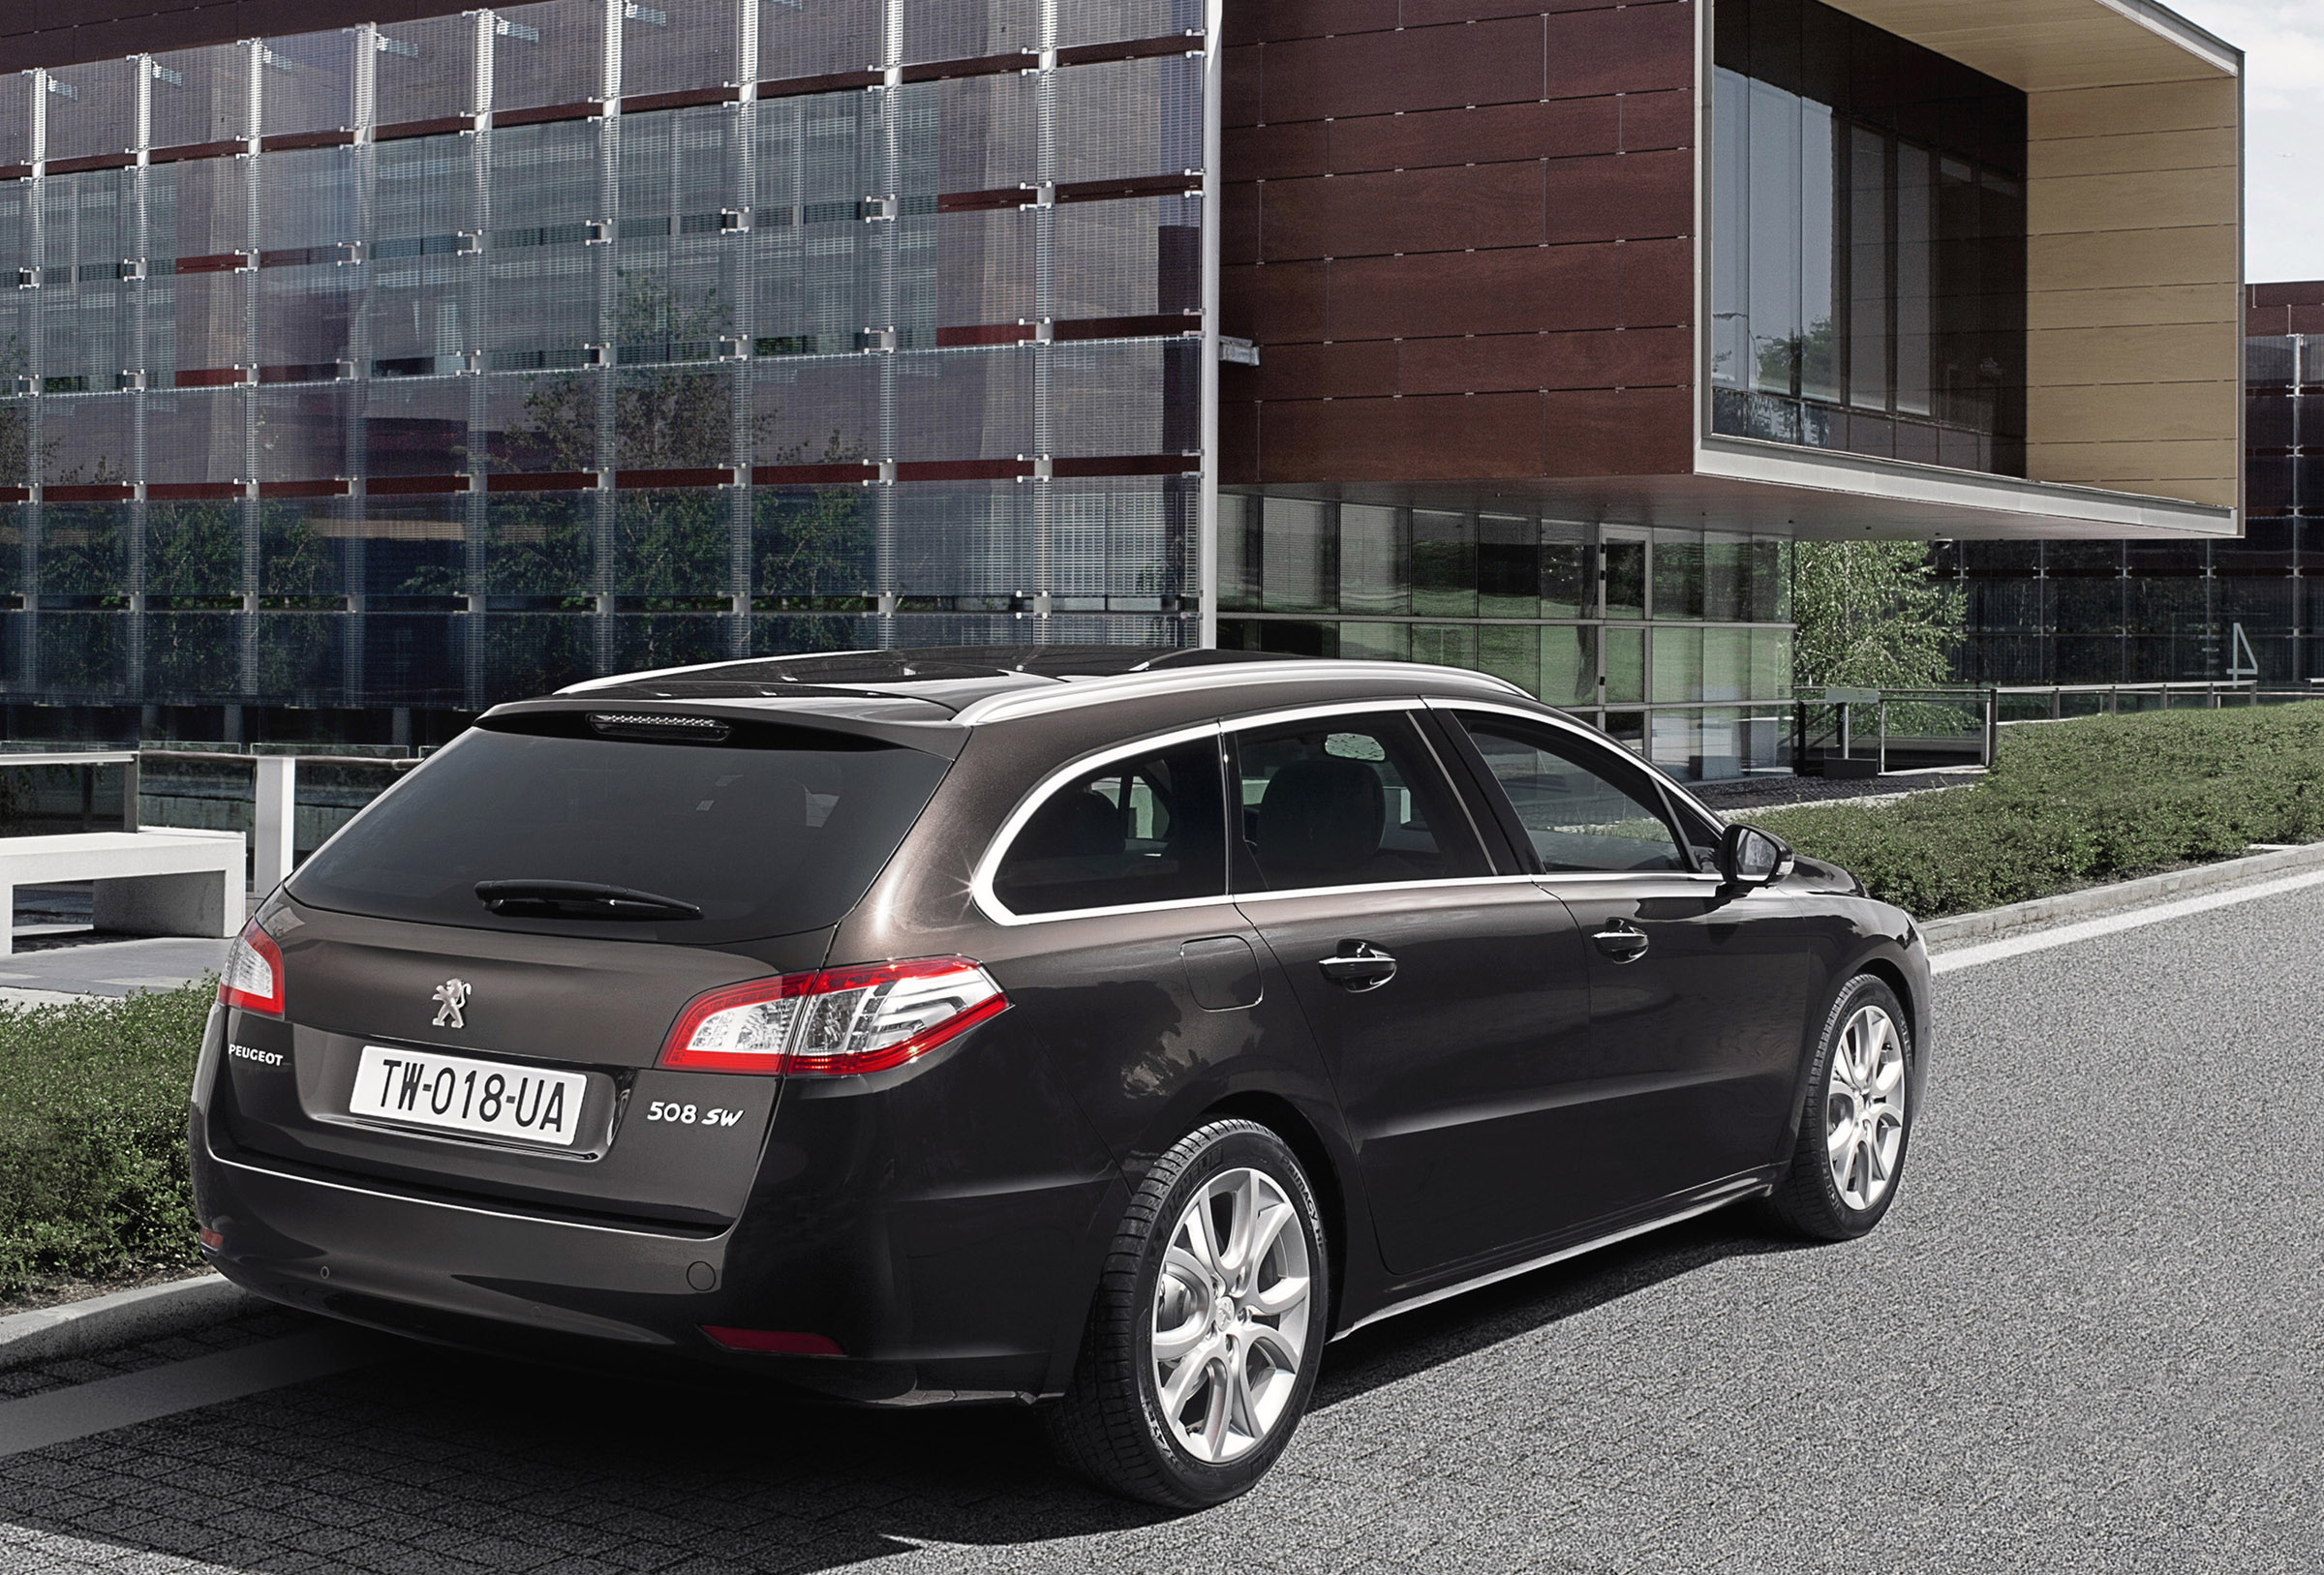 2011 Peugeot 508 In More Details And High Resolution